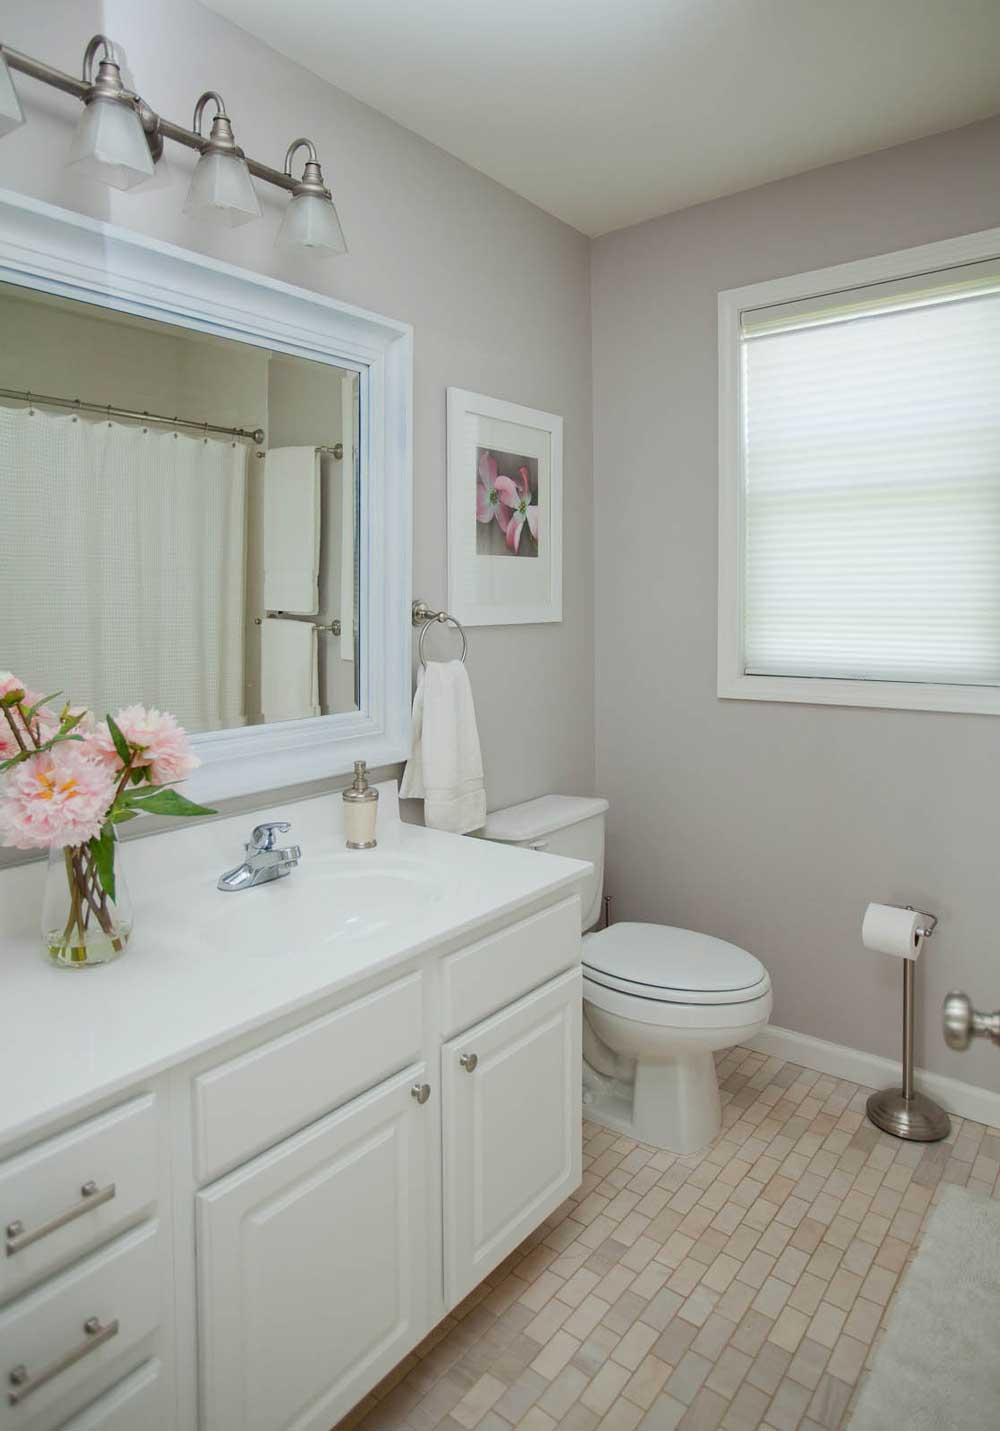 Bathroom with Peonies